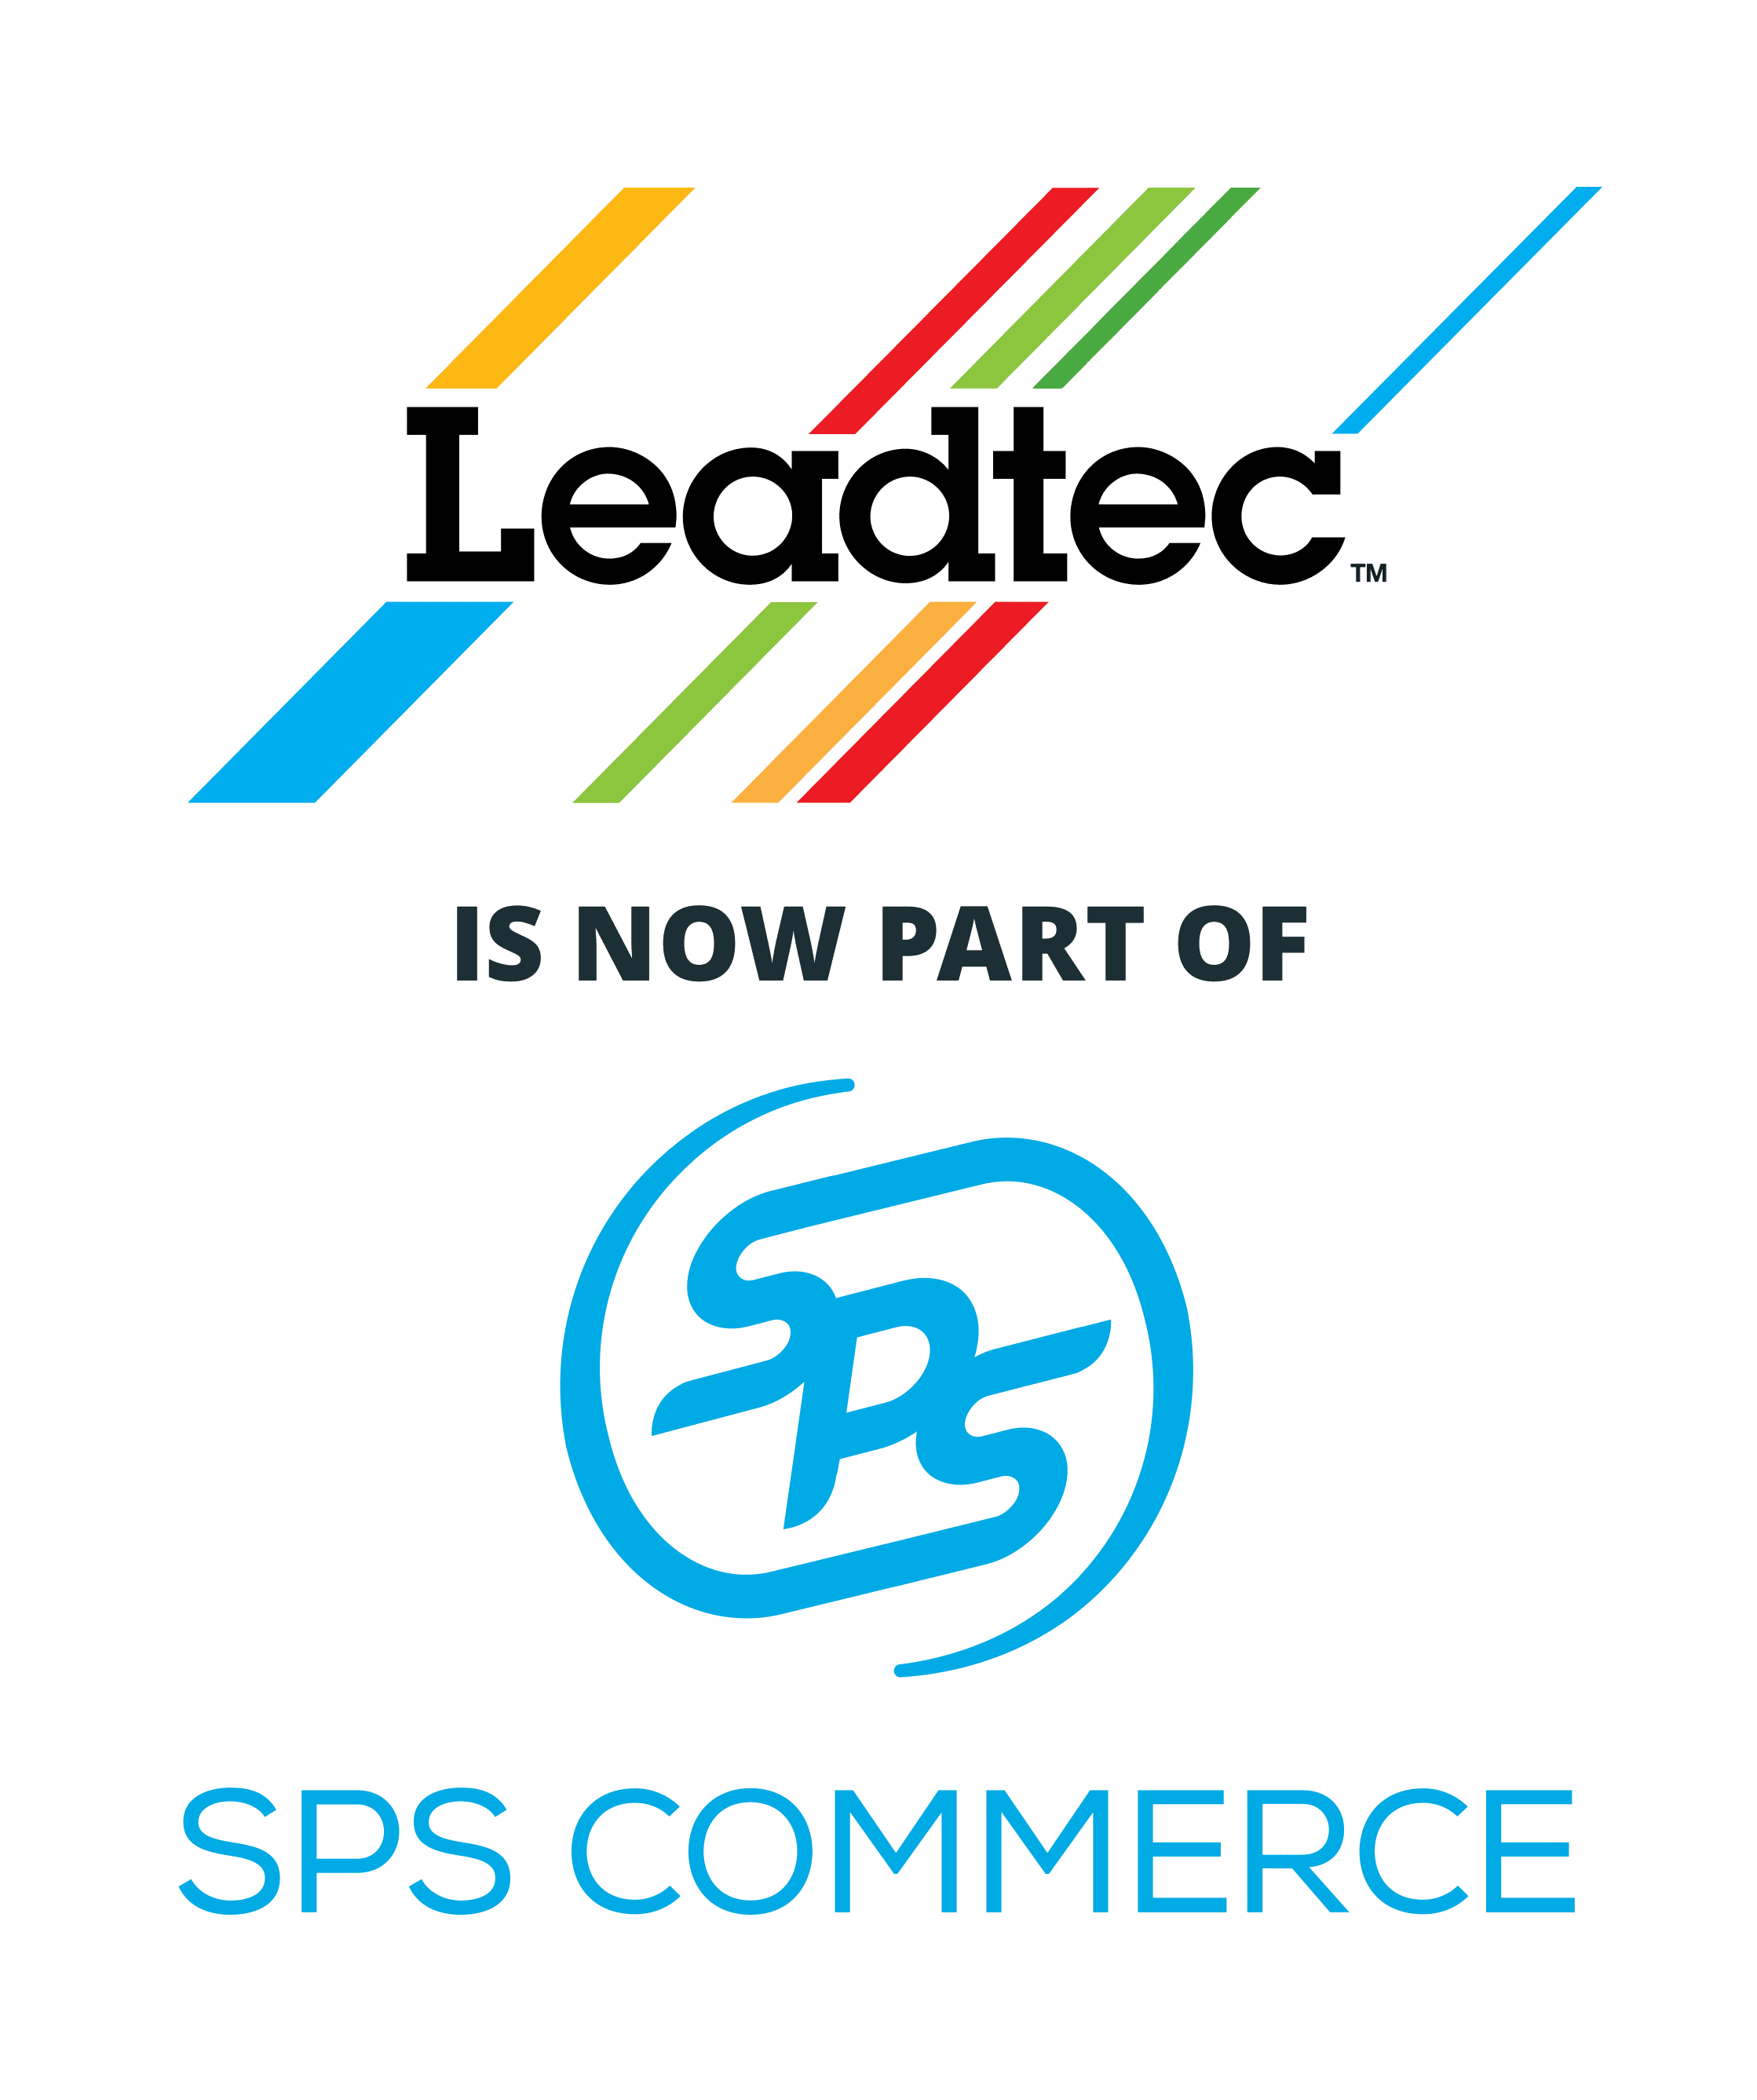 Leadtec is now part of SPS Commerce